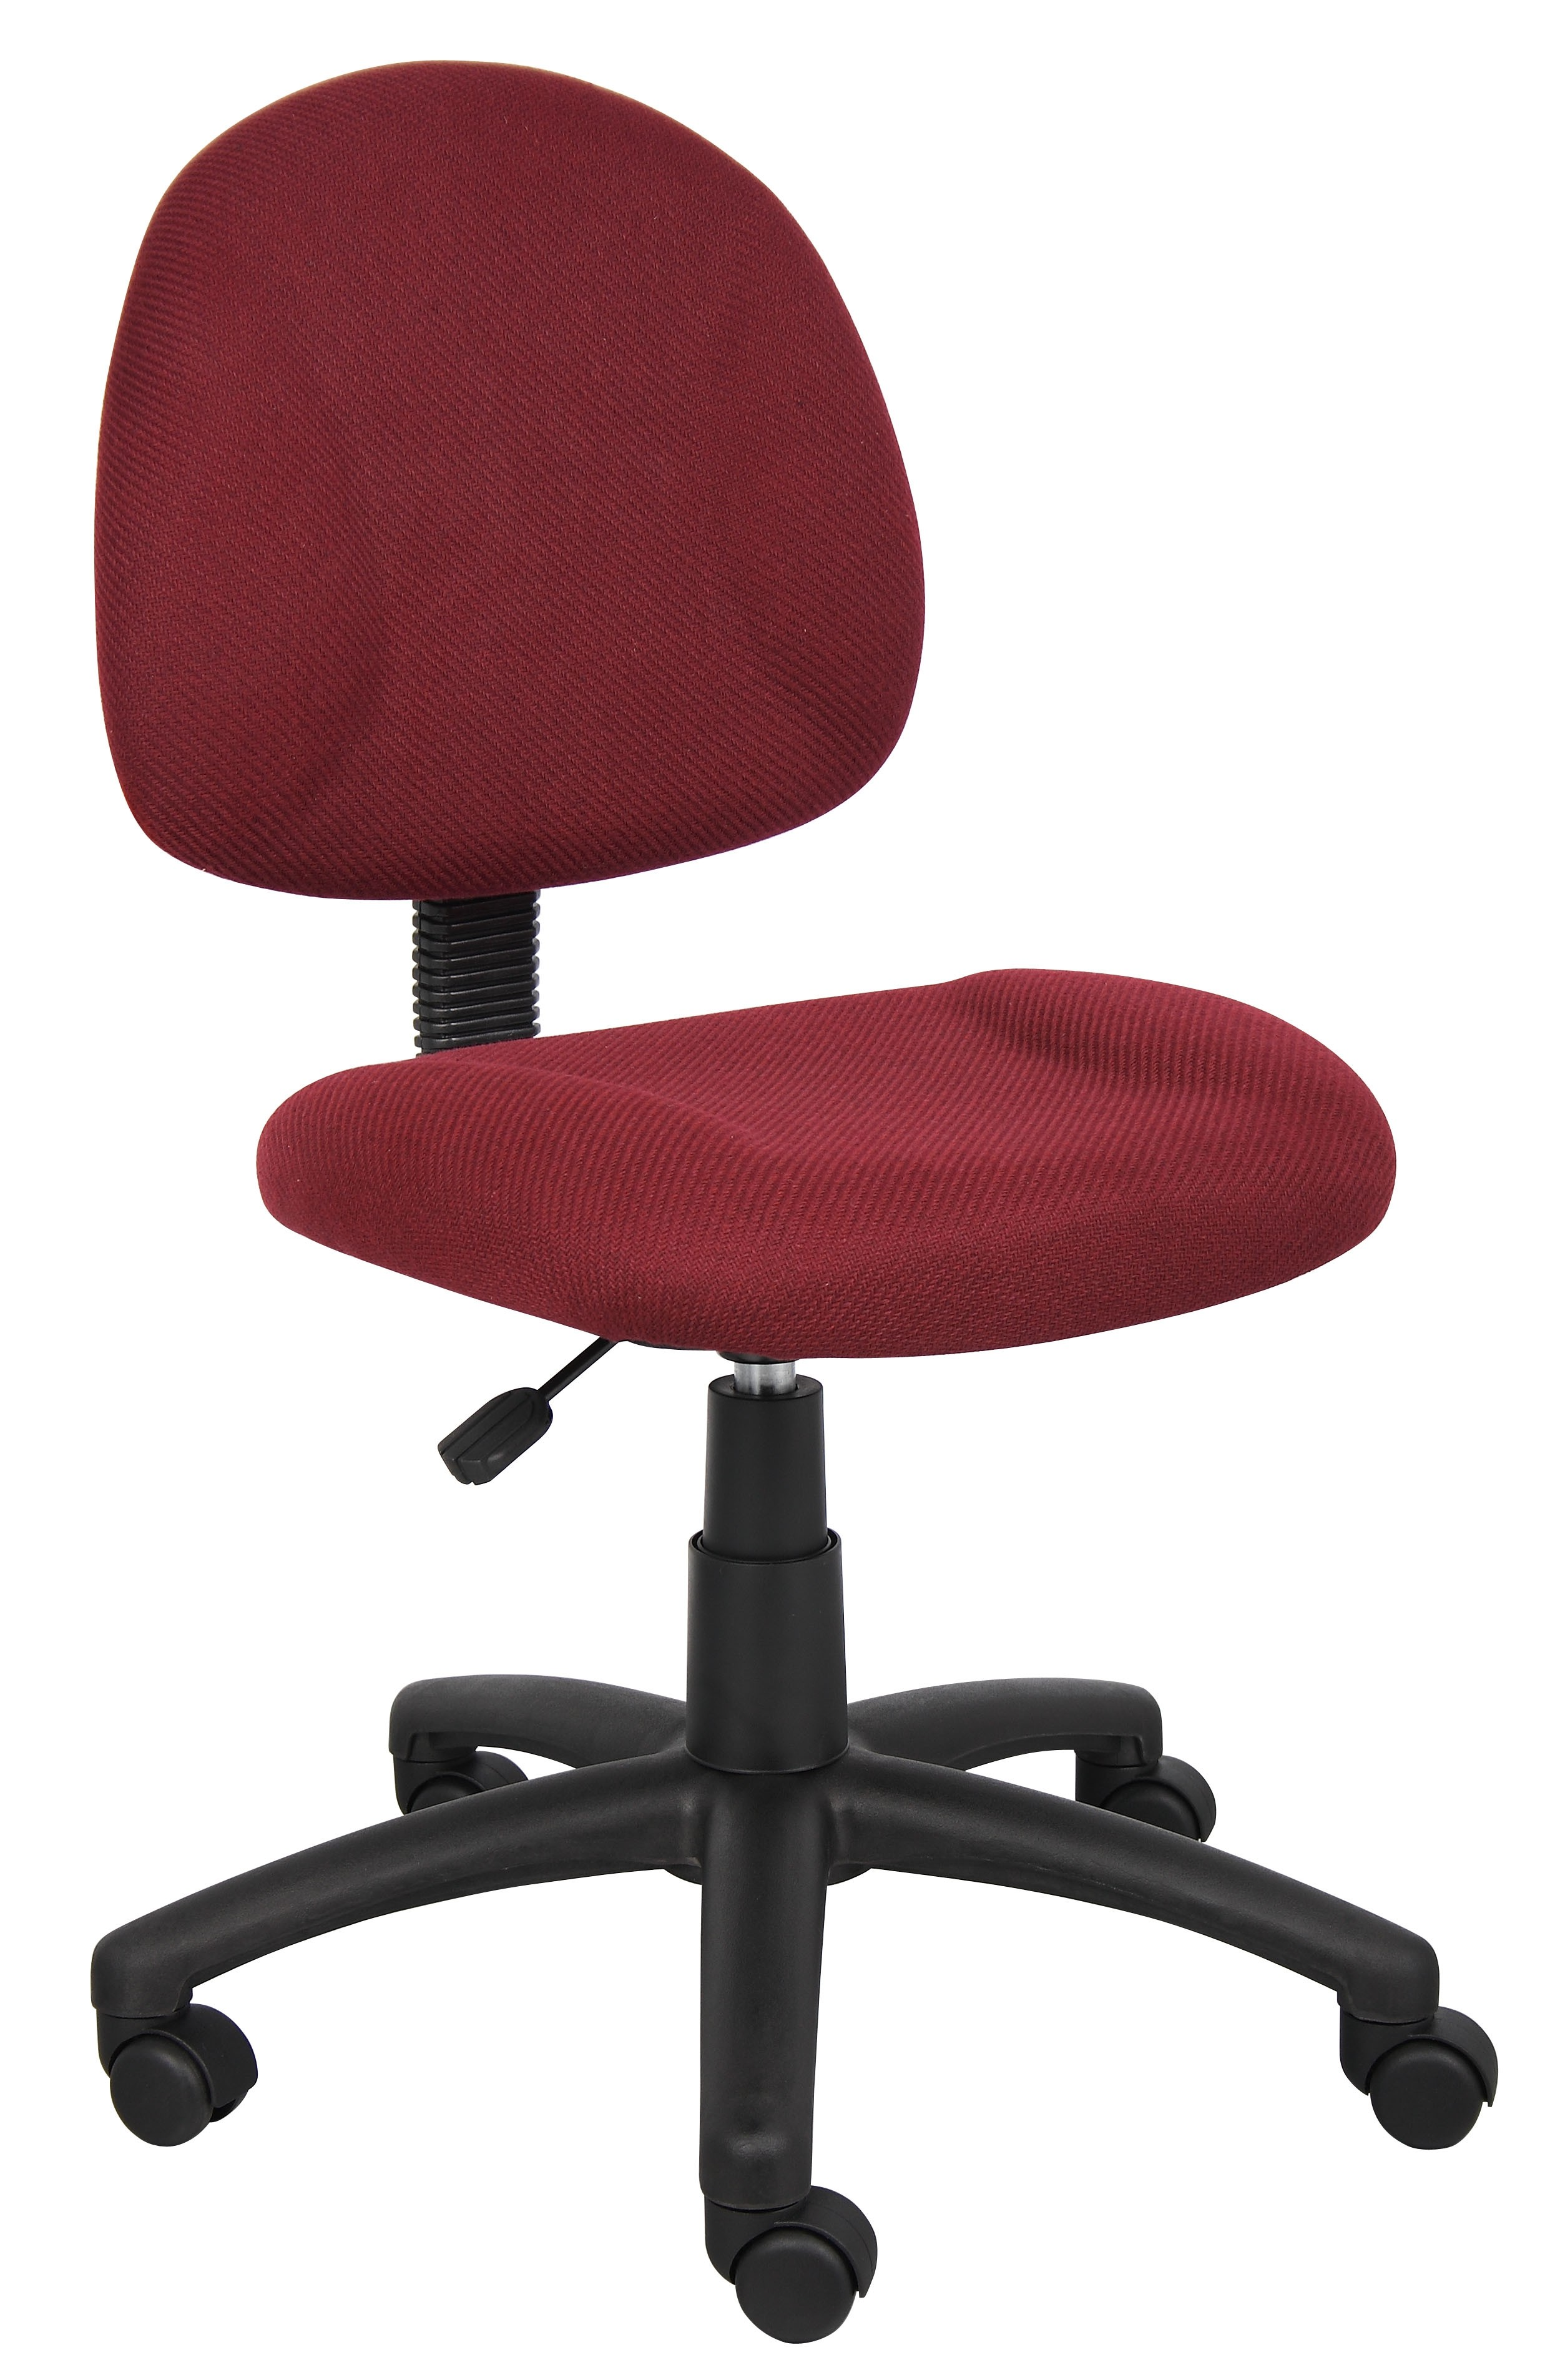 Task Chair Without Wheels Boss Burgundy Deluxe Posture Chair B315 By